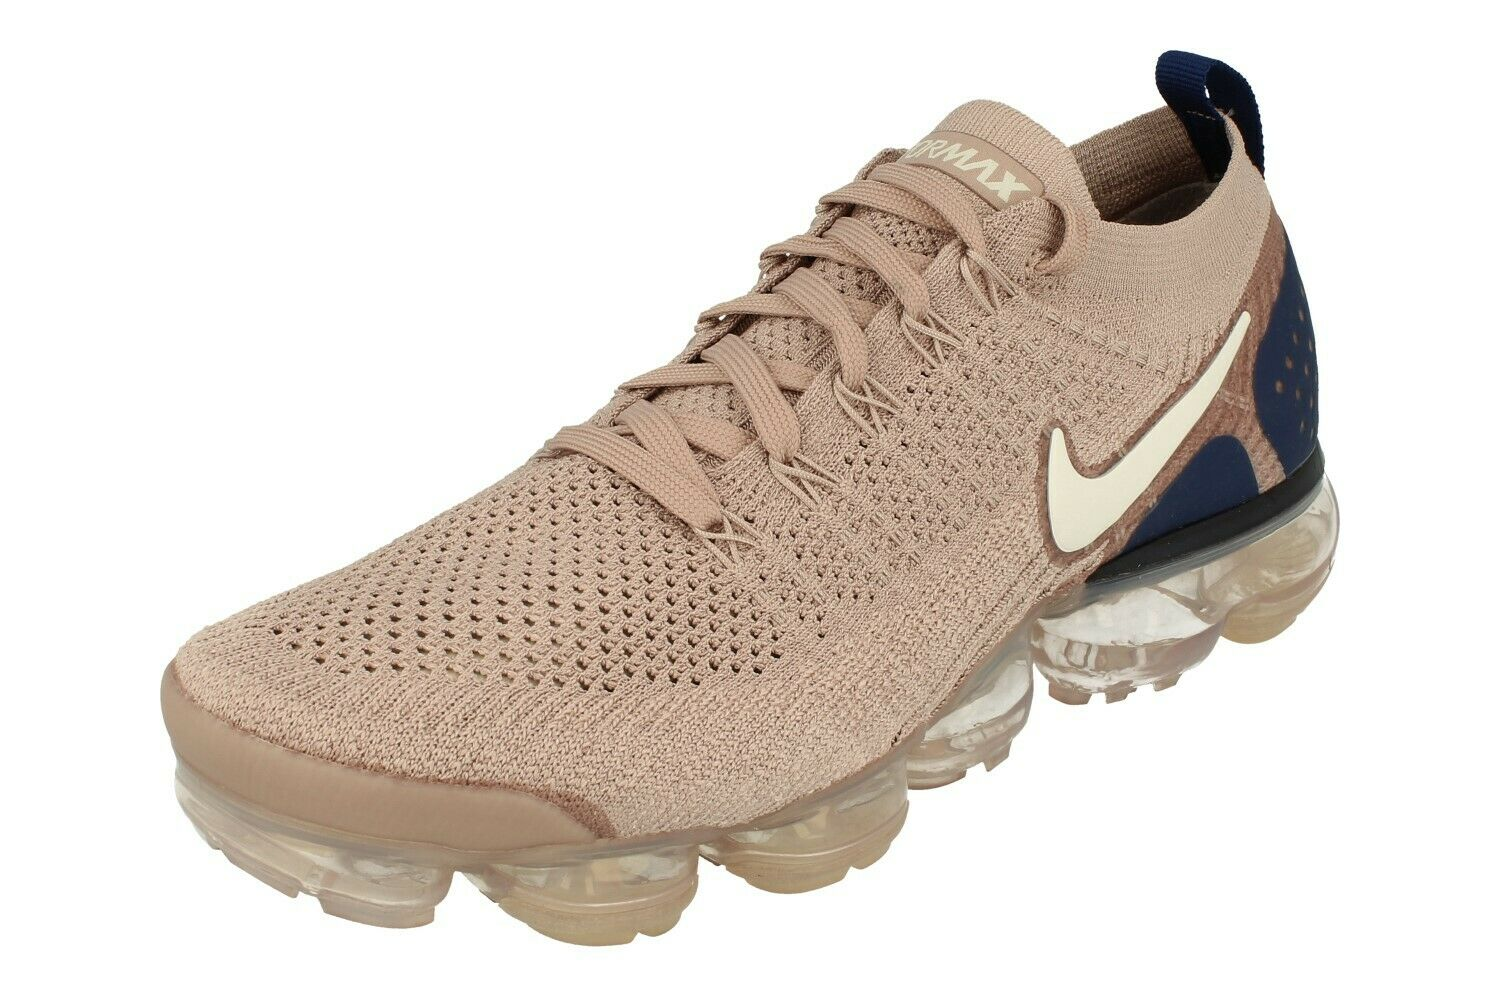 Nike Air Vapormax Flyknit 2 Mens Running Trainers 942842 Sneakers shoes 201